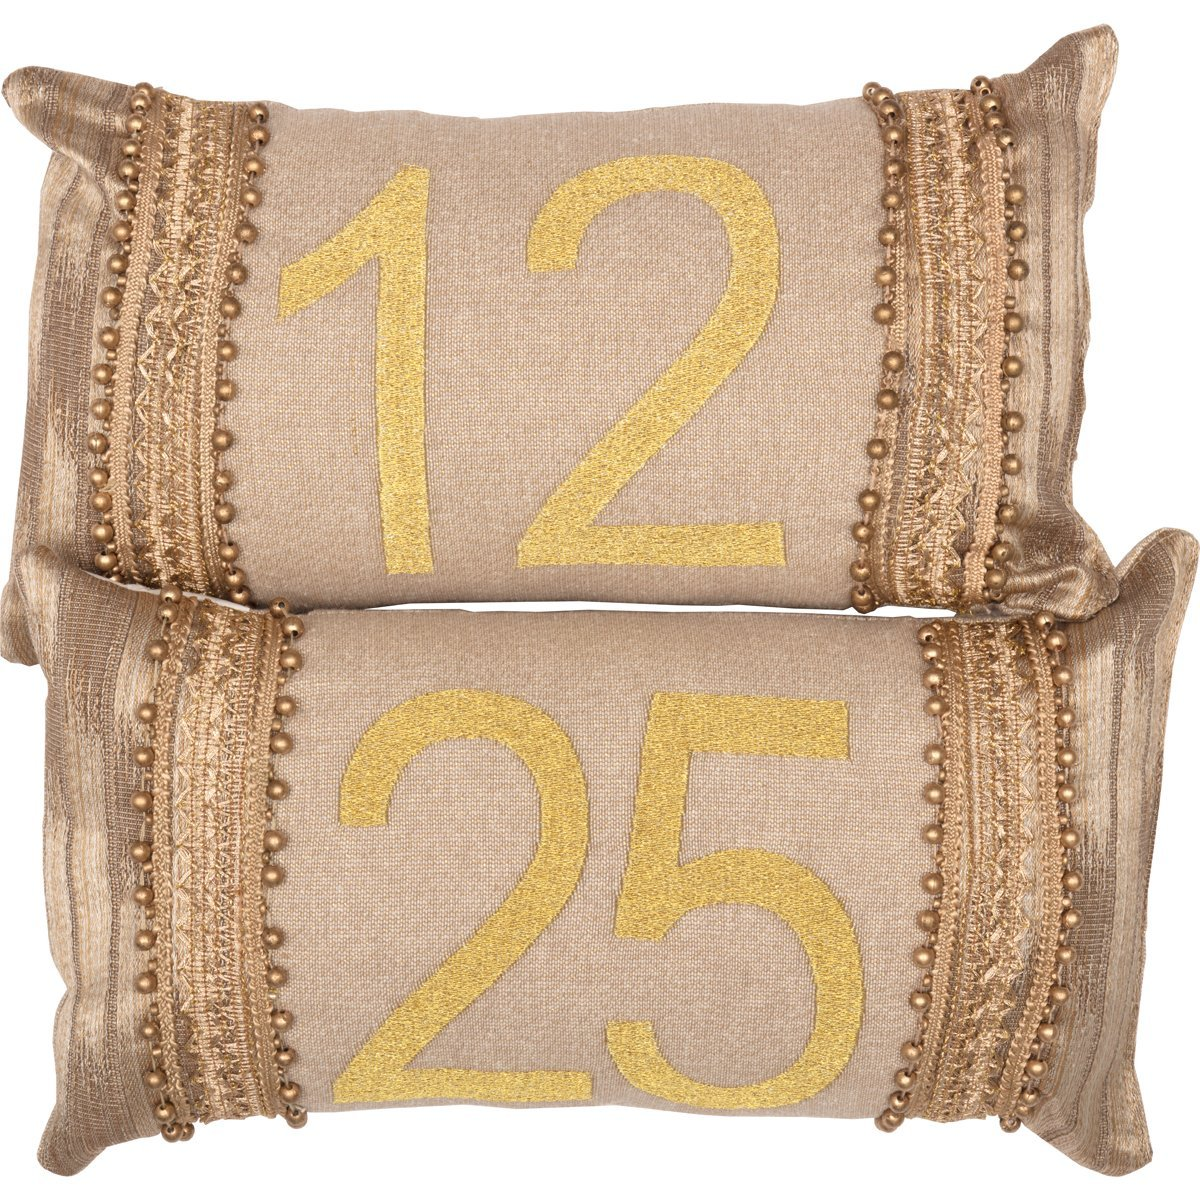 Celebrate Pillow Set of 2.